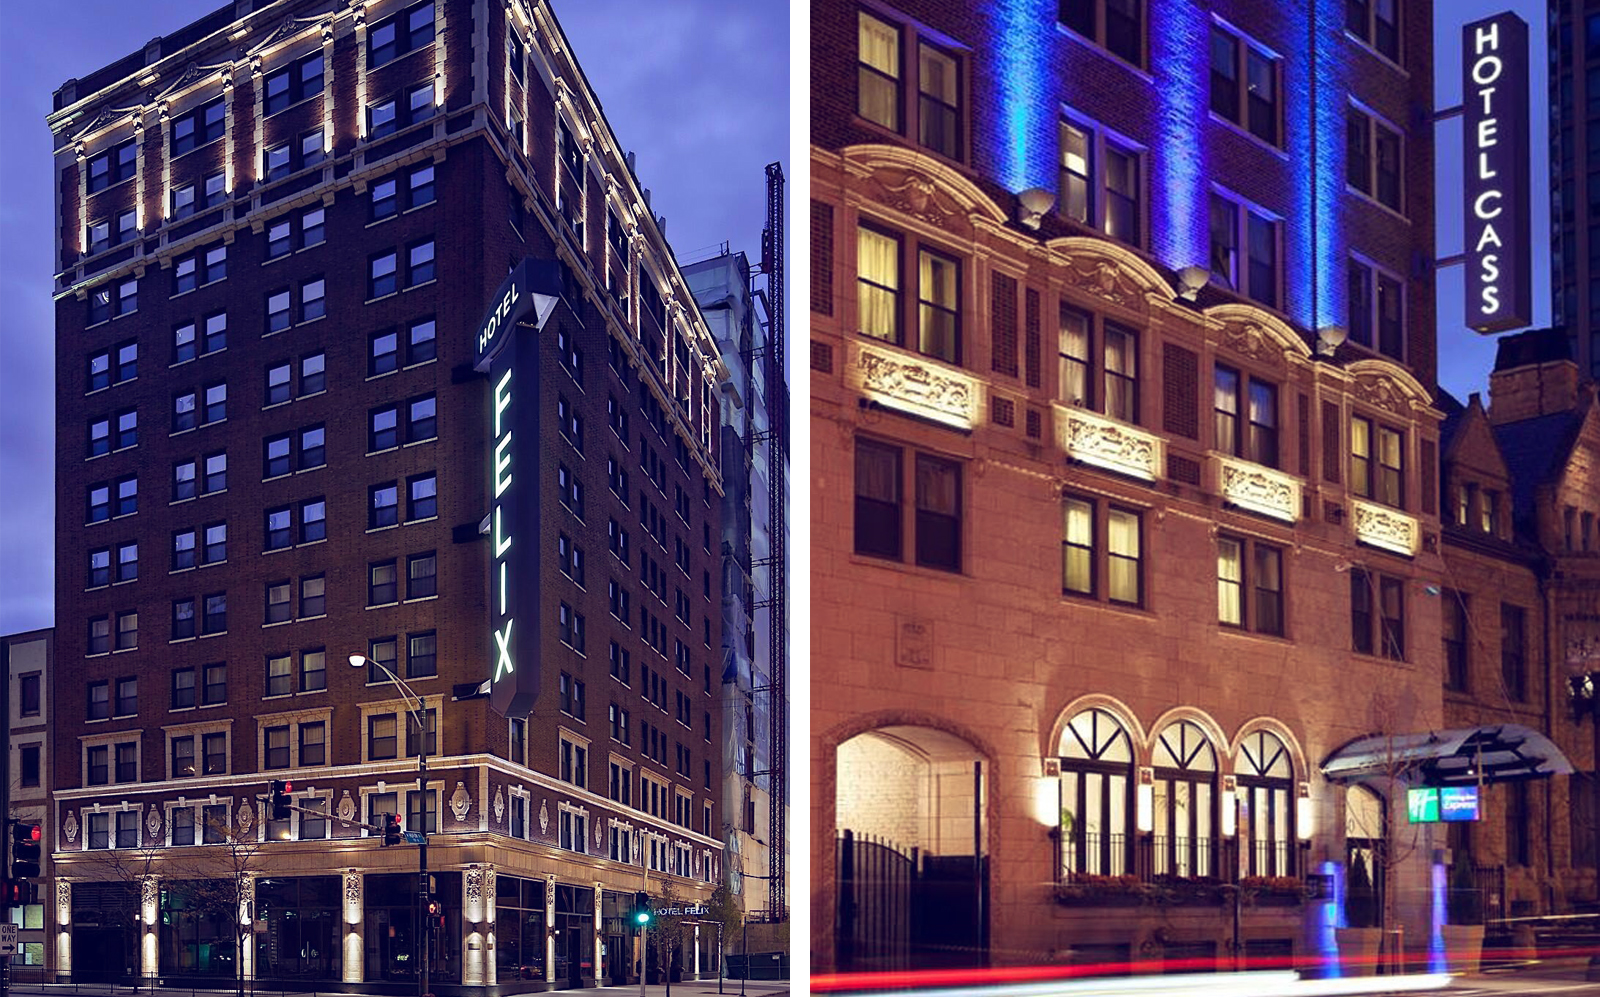 Hotel Felix and Holiday Inn Express Chicago - Magnificent Mile. (Hotel Felix, Hotel Cass)